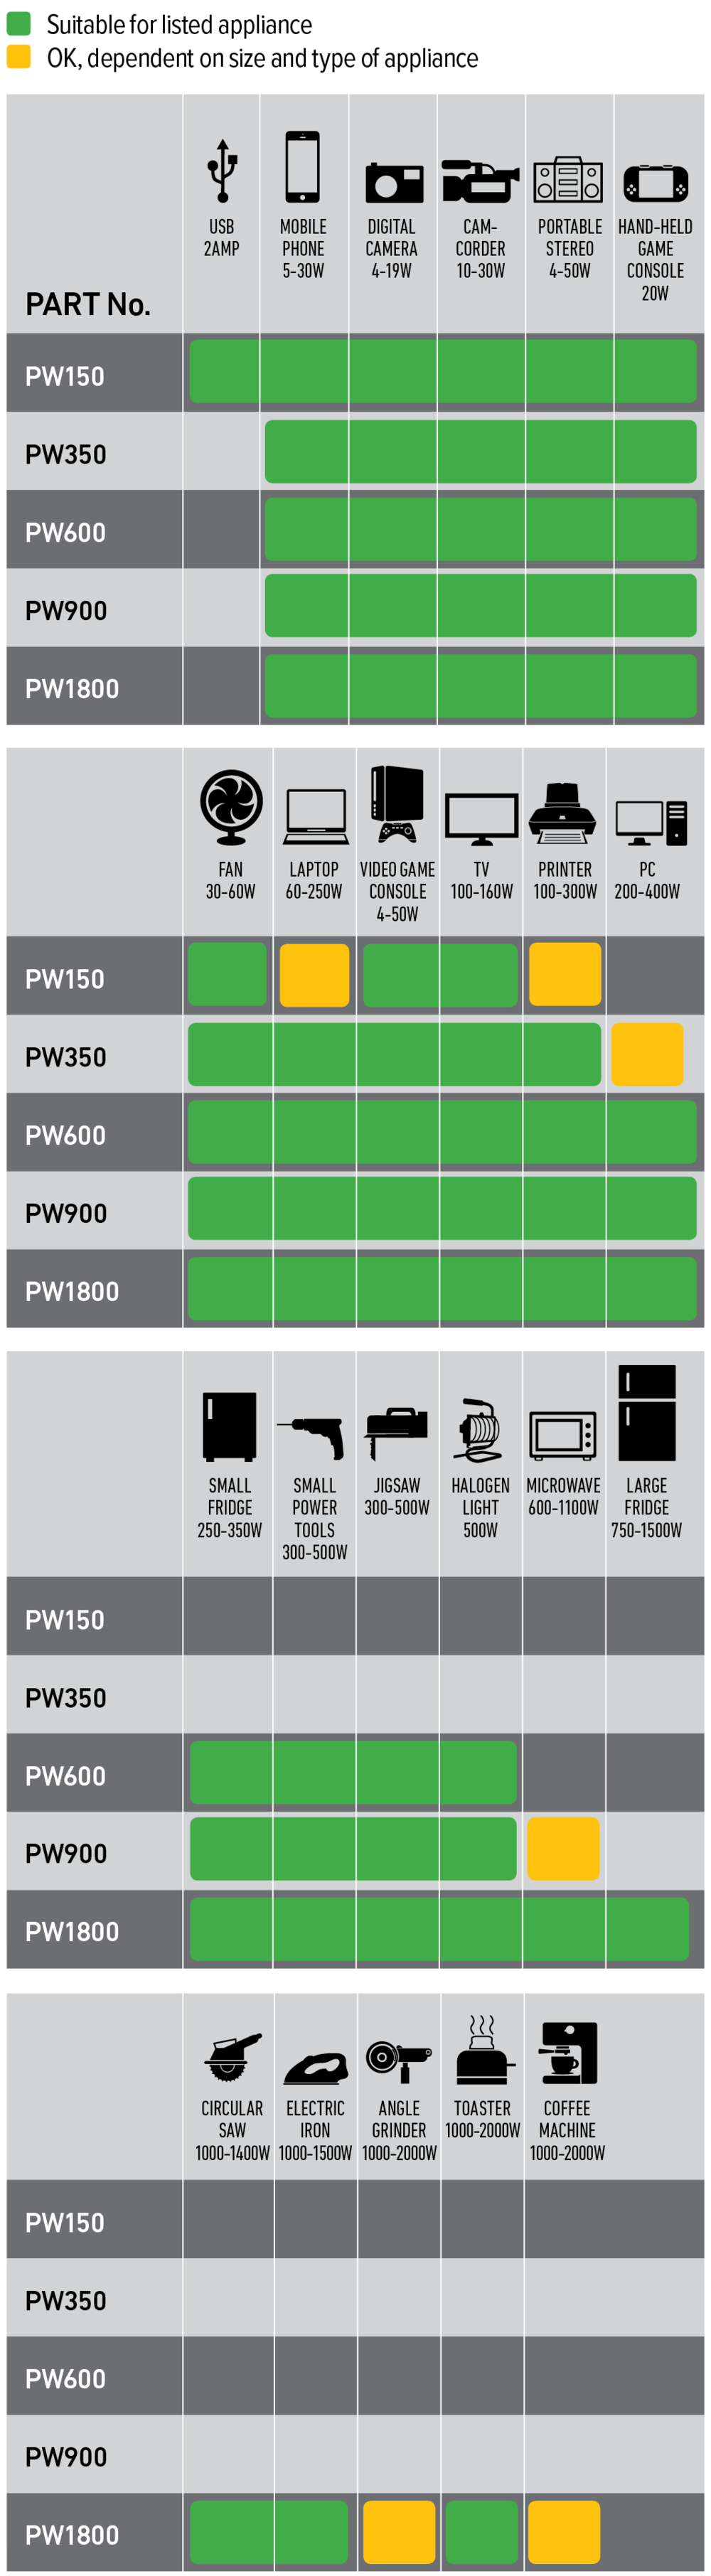 Pro-Wave inverter - selection guide